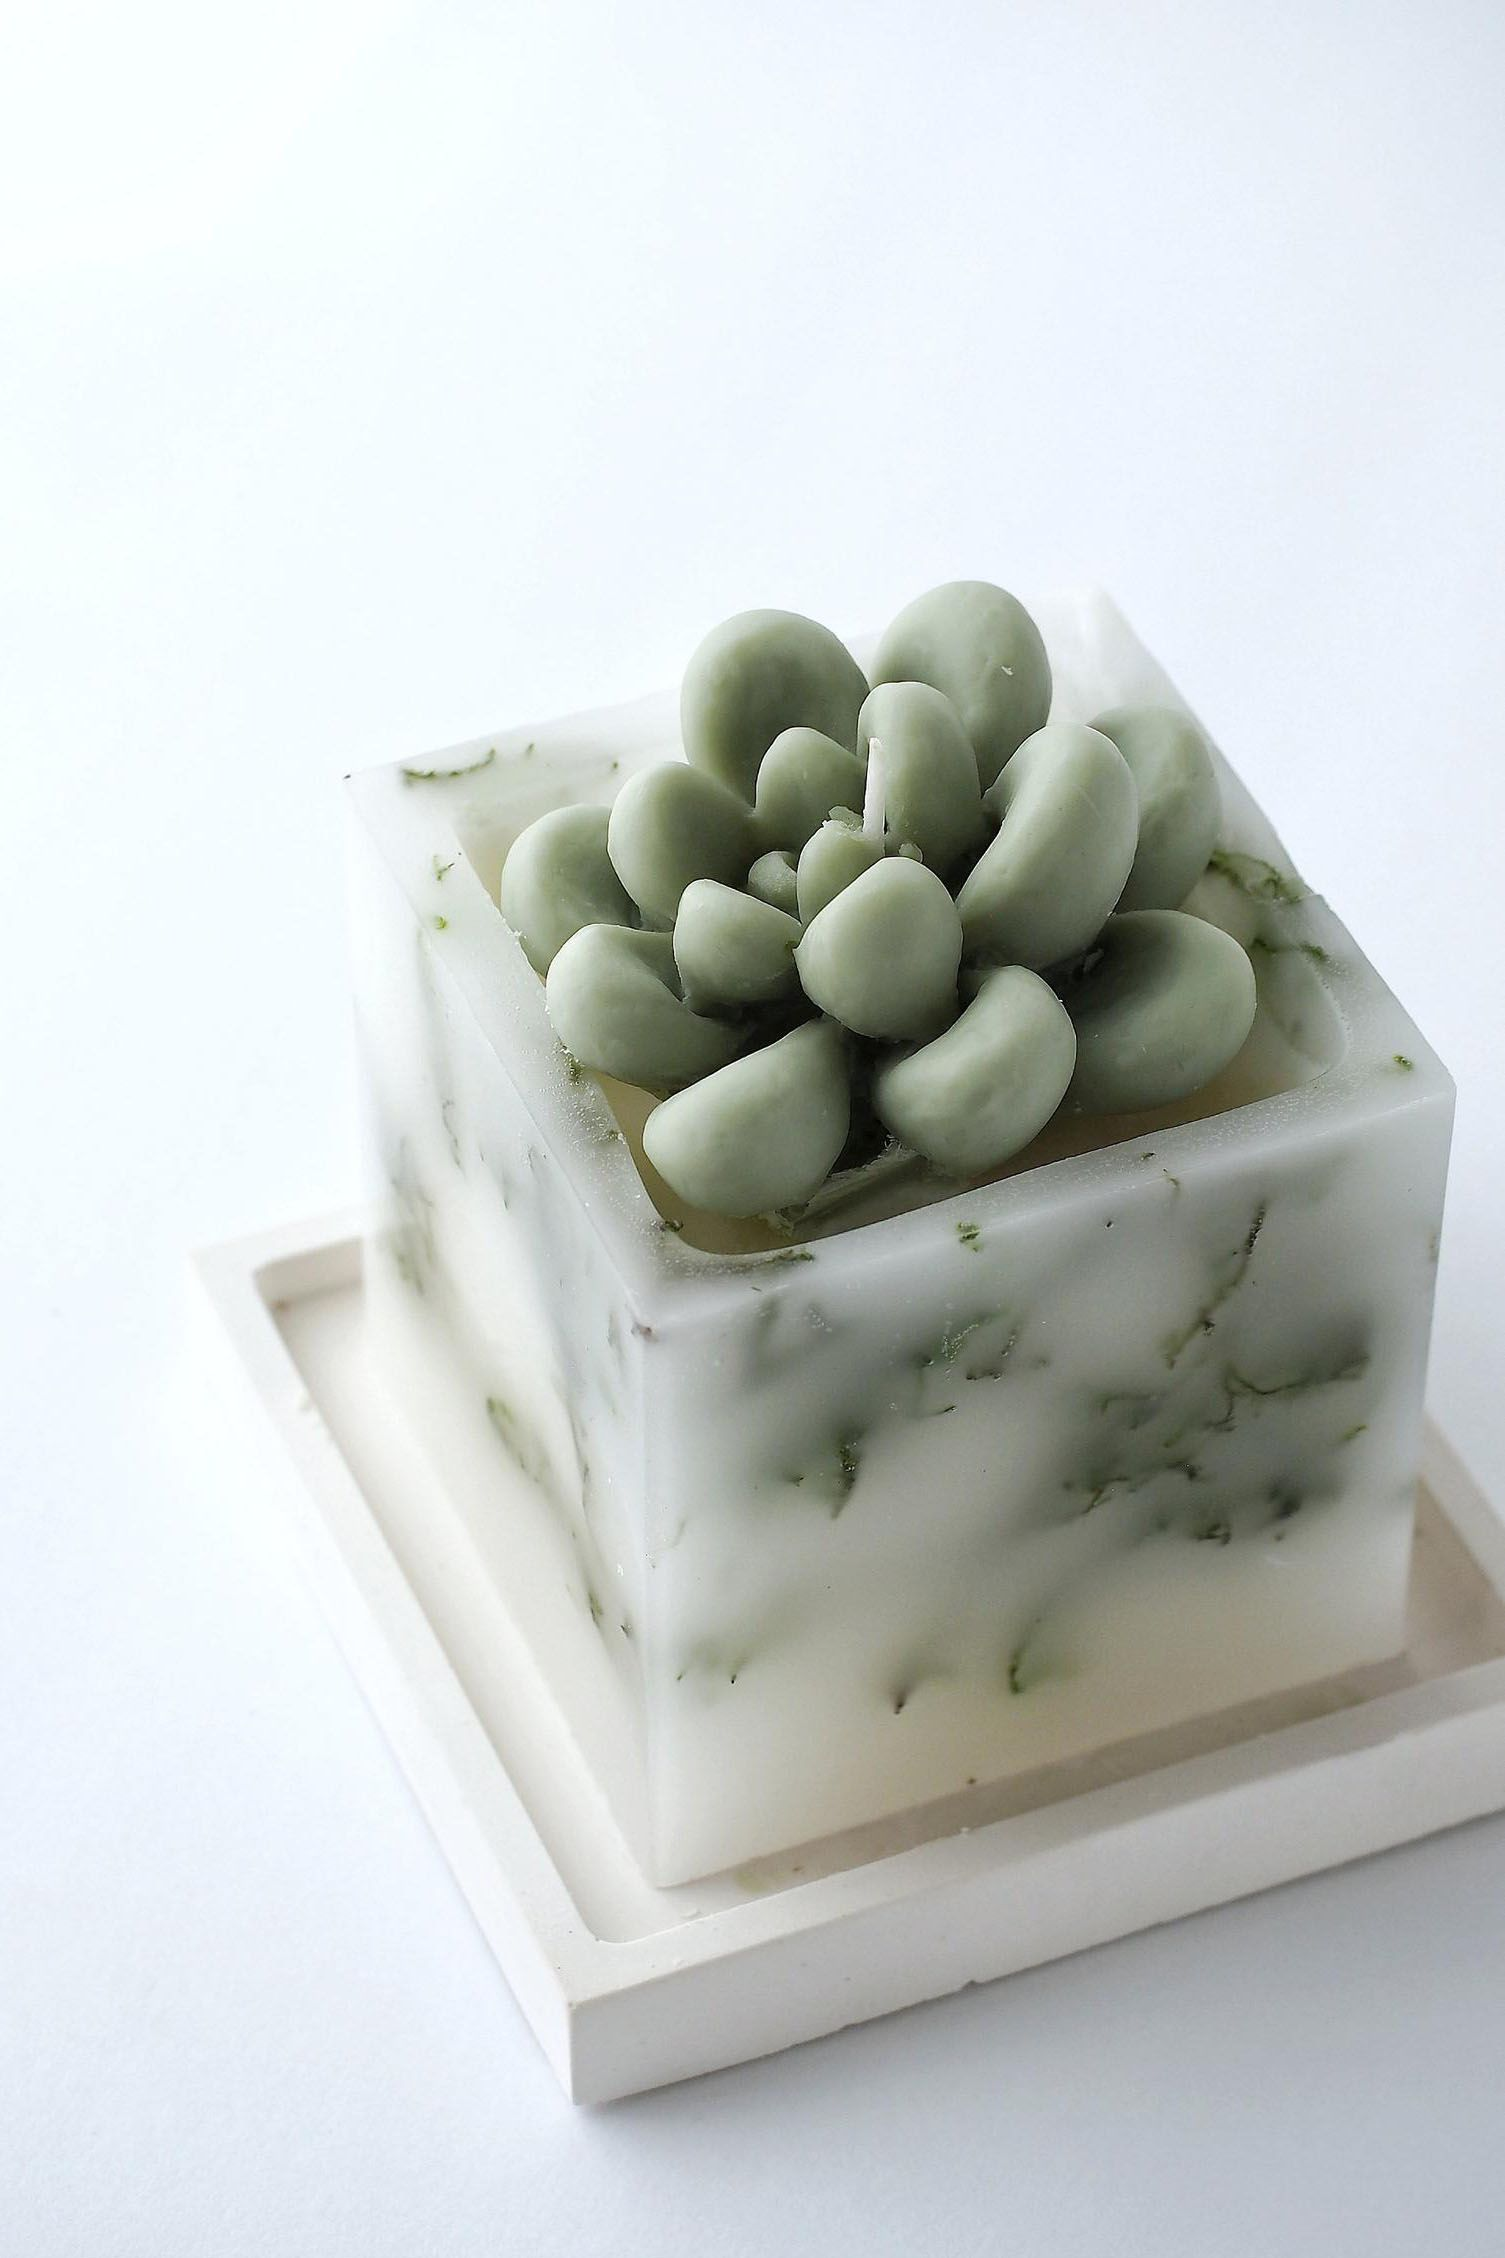 Natural ingredients and colors bring a feeling of nature, health and freshness to this moss and succulent candle.